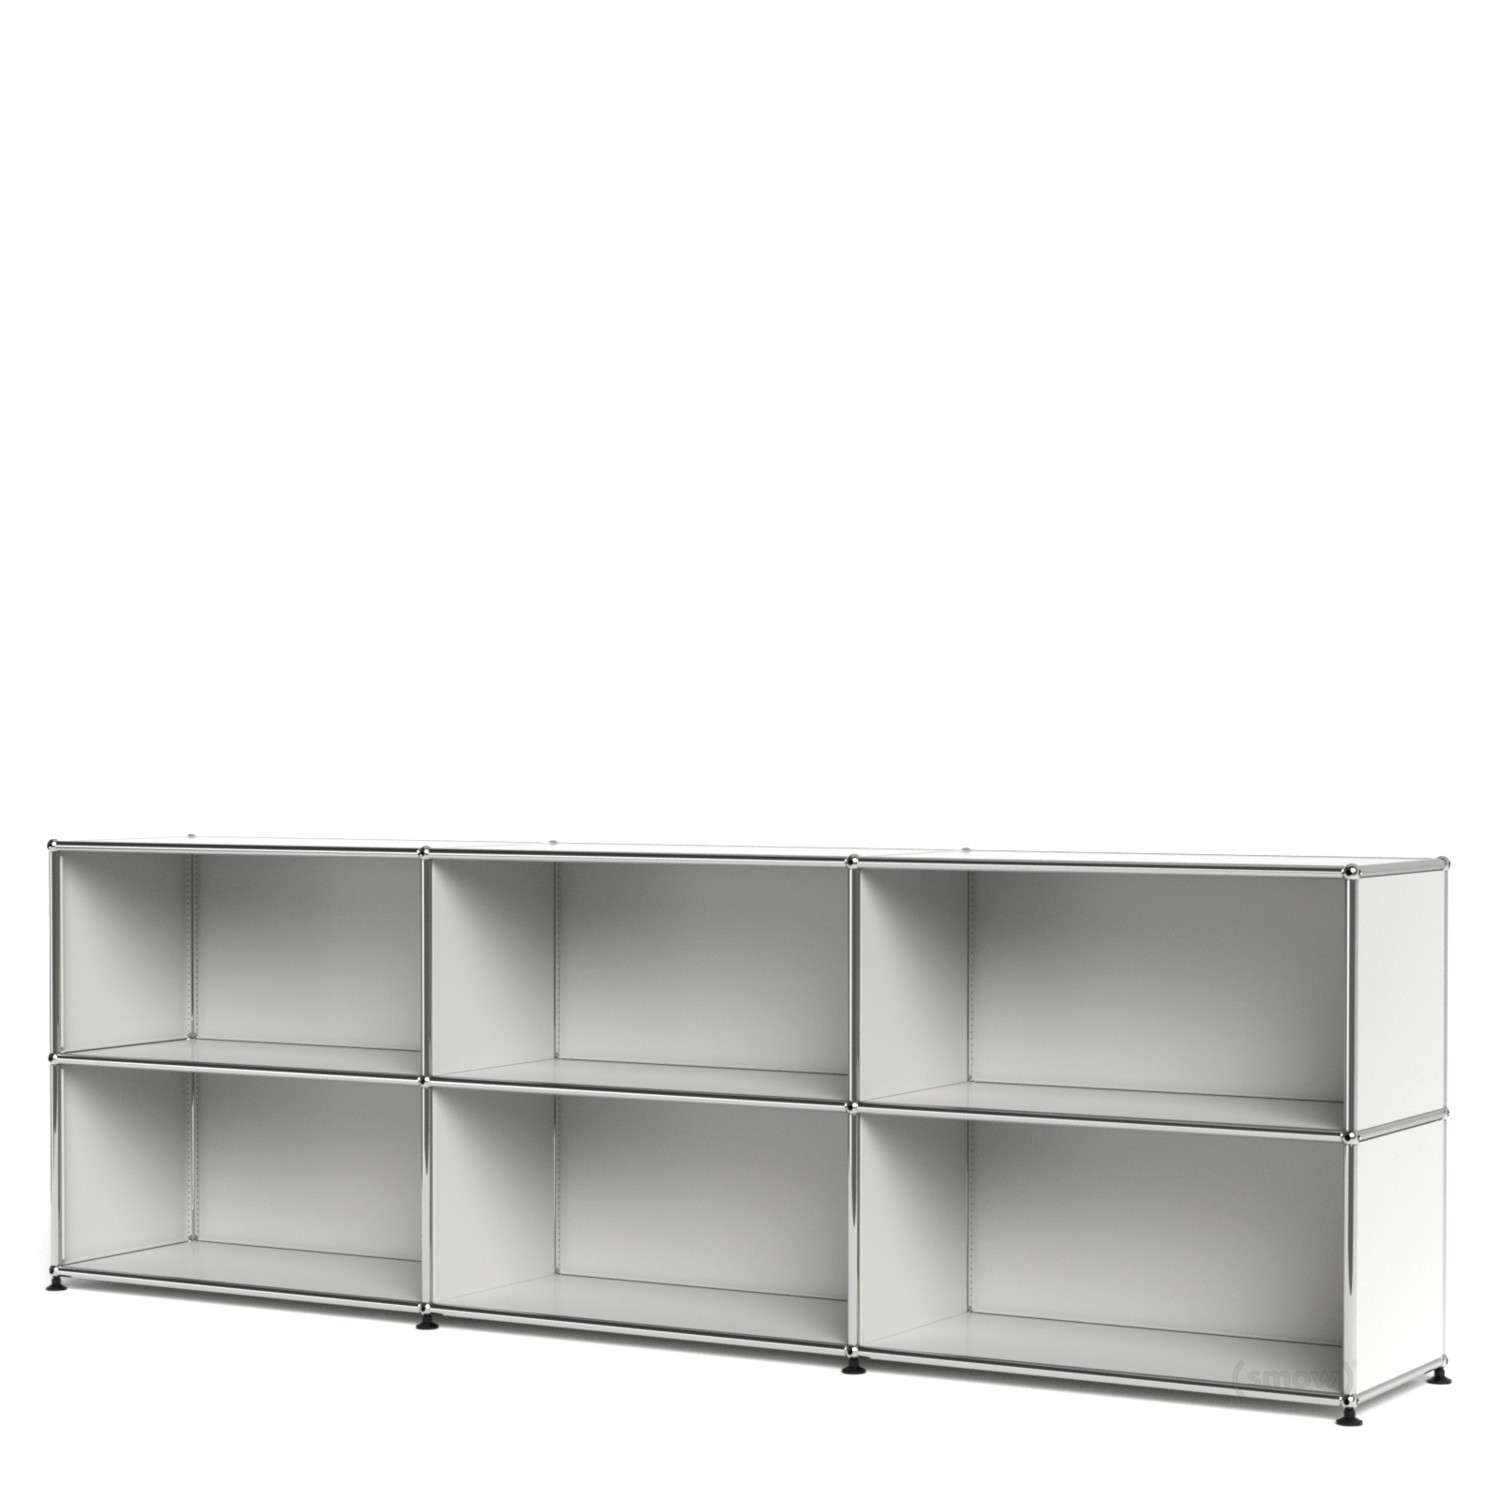 usm haller sideboard xl customisable pure white ral 9010. Black Bedroom Furniture Sets. Home Design Ideas